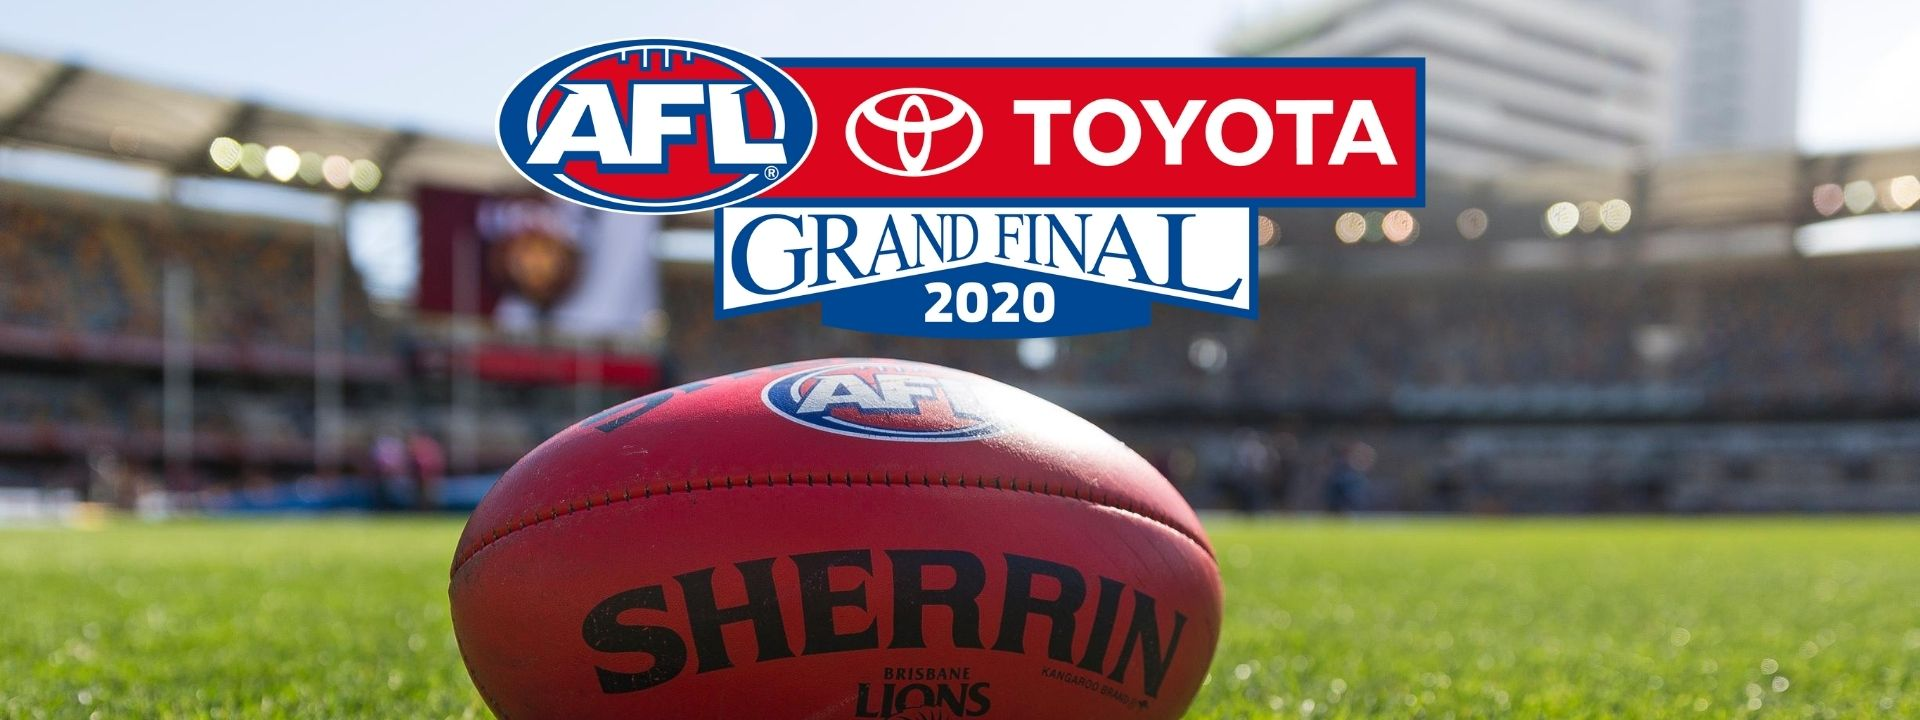 AFL Grand Final - pre and post match entertainment [Brisbane]